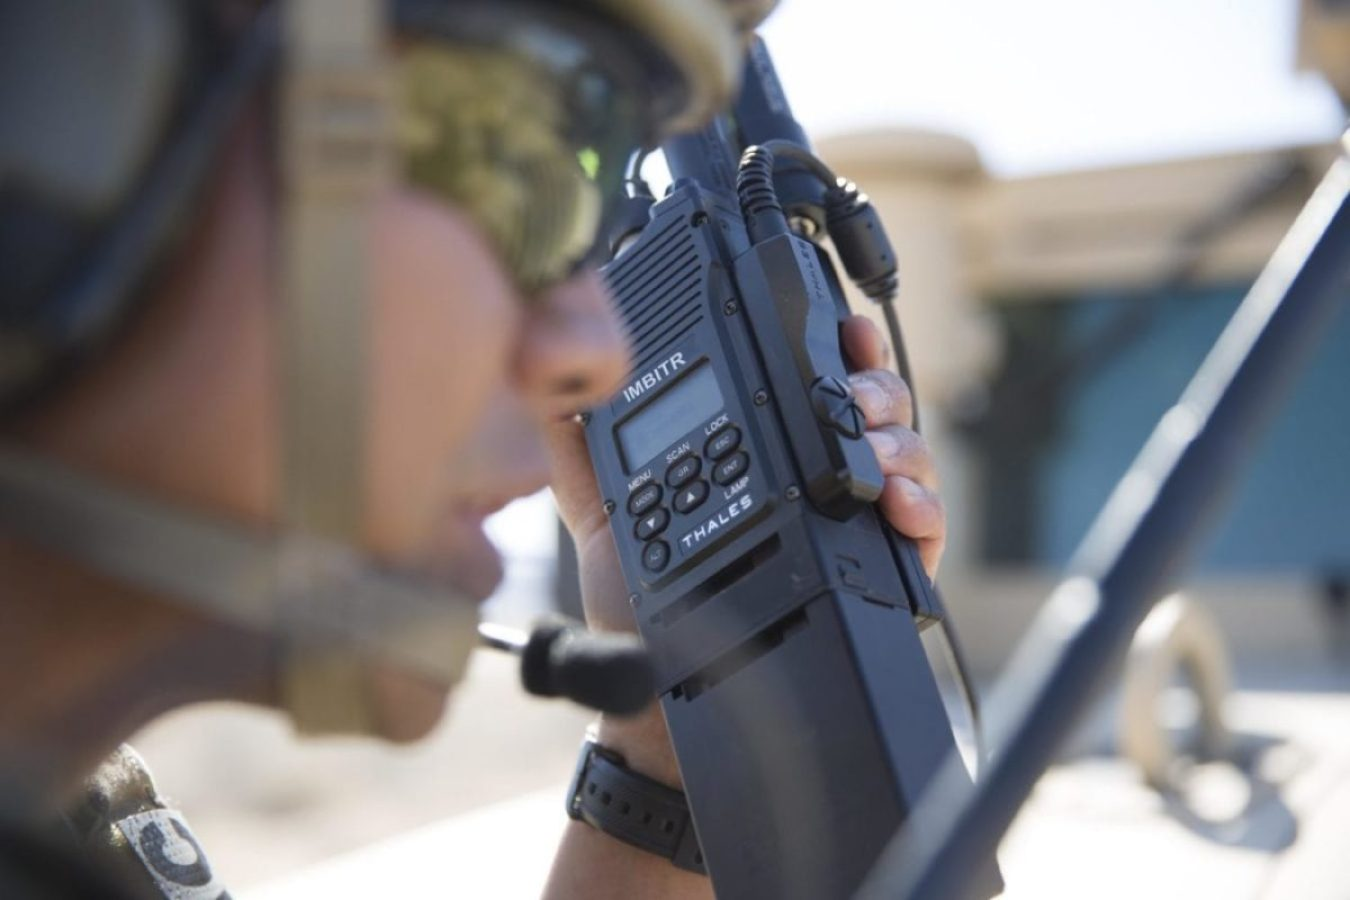 Special Operations Tactical Communications AN/PRC-148C Improved Multiband Inter-Intra Team Radio (IMBITR)